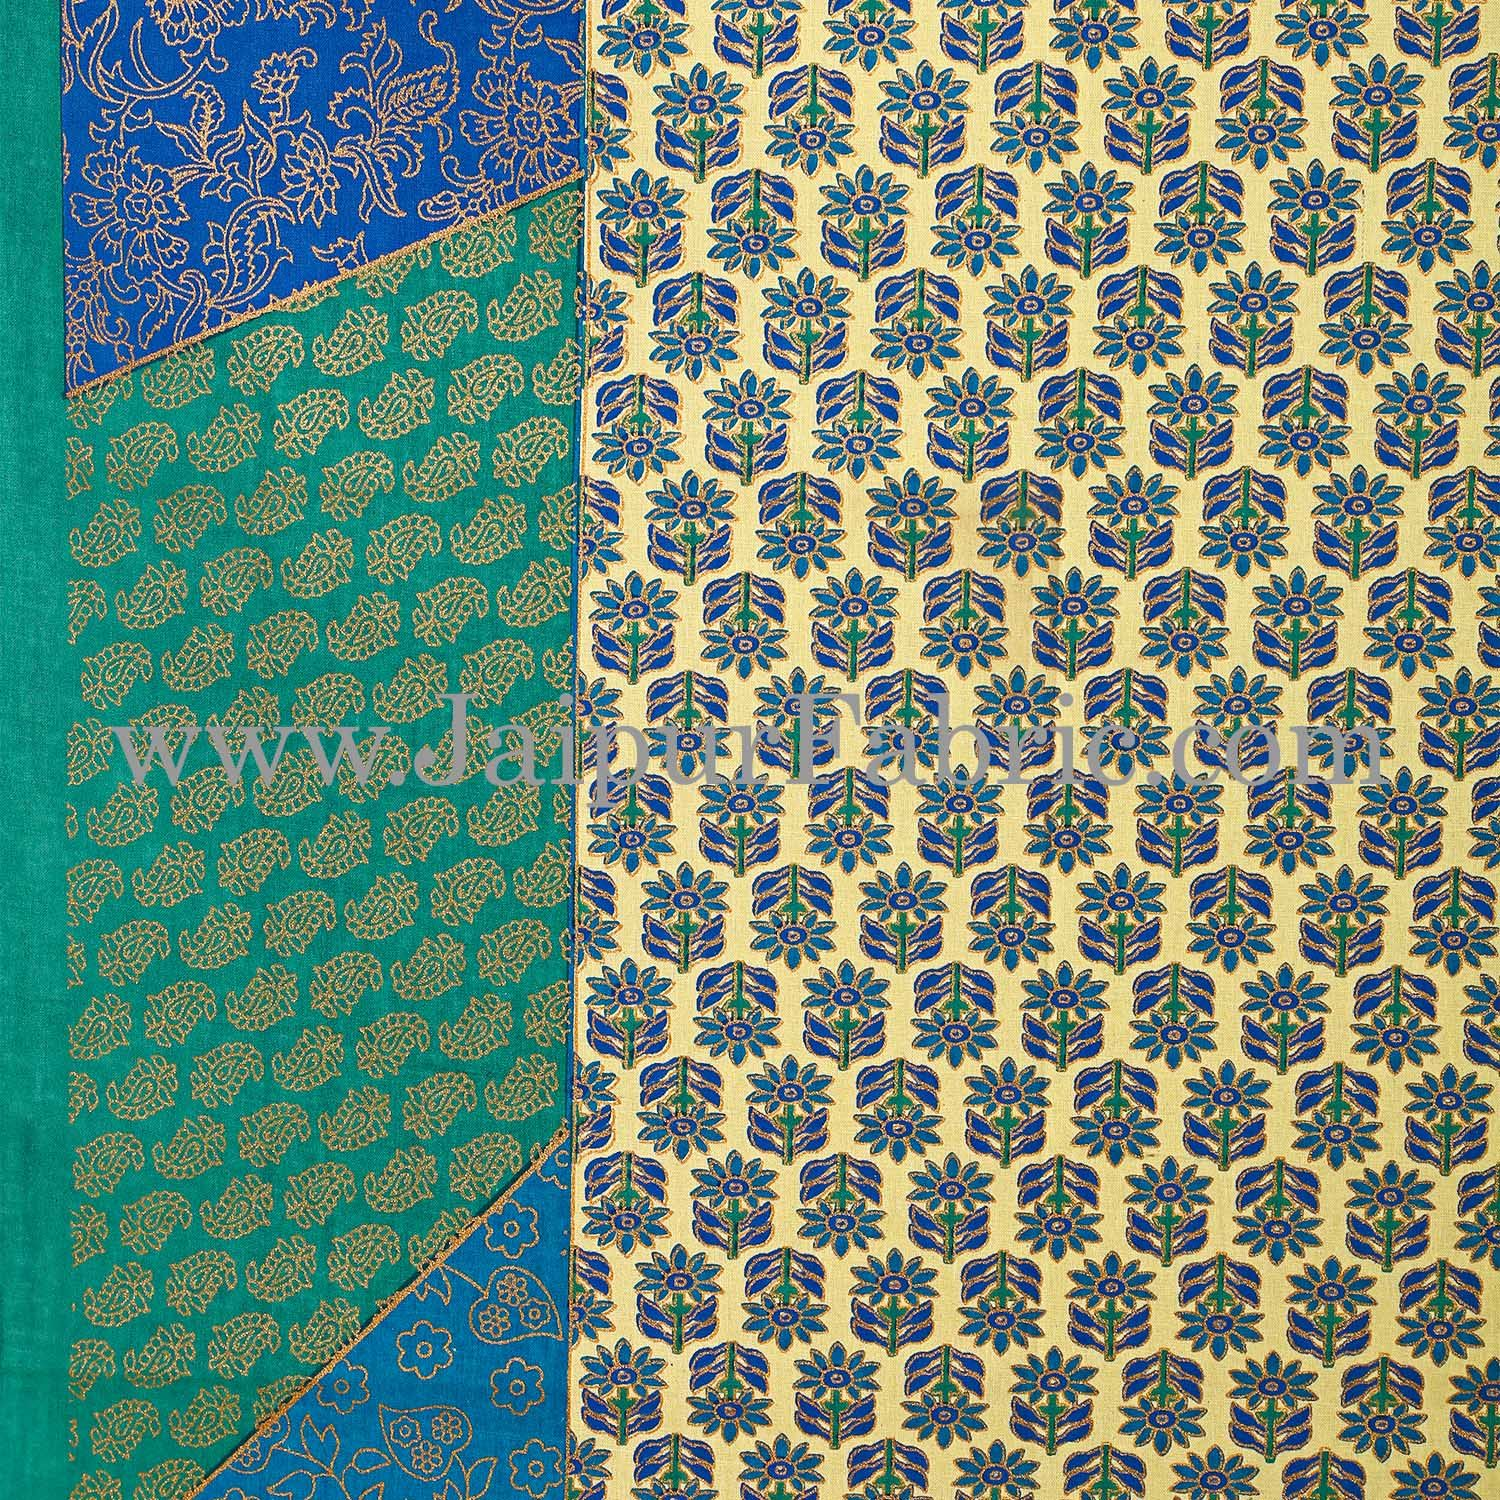 Green Border With Golden Print   Central Square Floral Print Super Fine Cotton Diwan Set